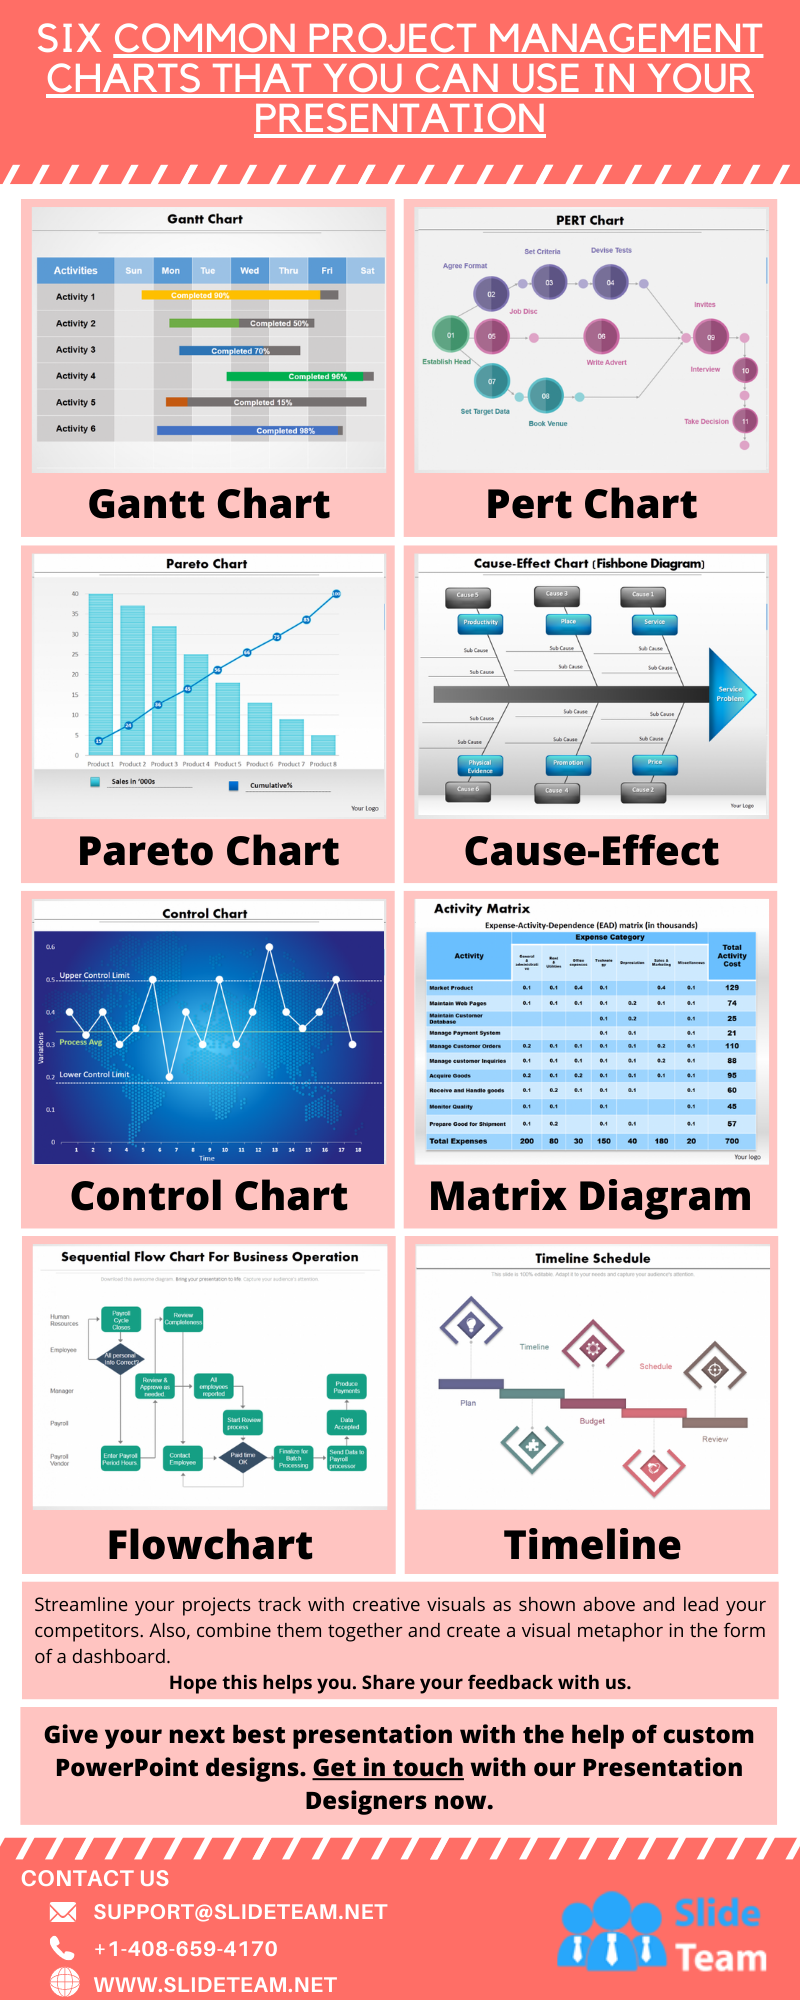 Six Common Project Management Charts That You Can Use in Your Presentation #infographic #Presentation Charts #infographics #Charts #Management Charts #Design & Research